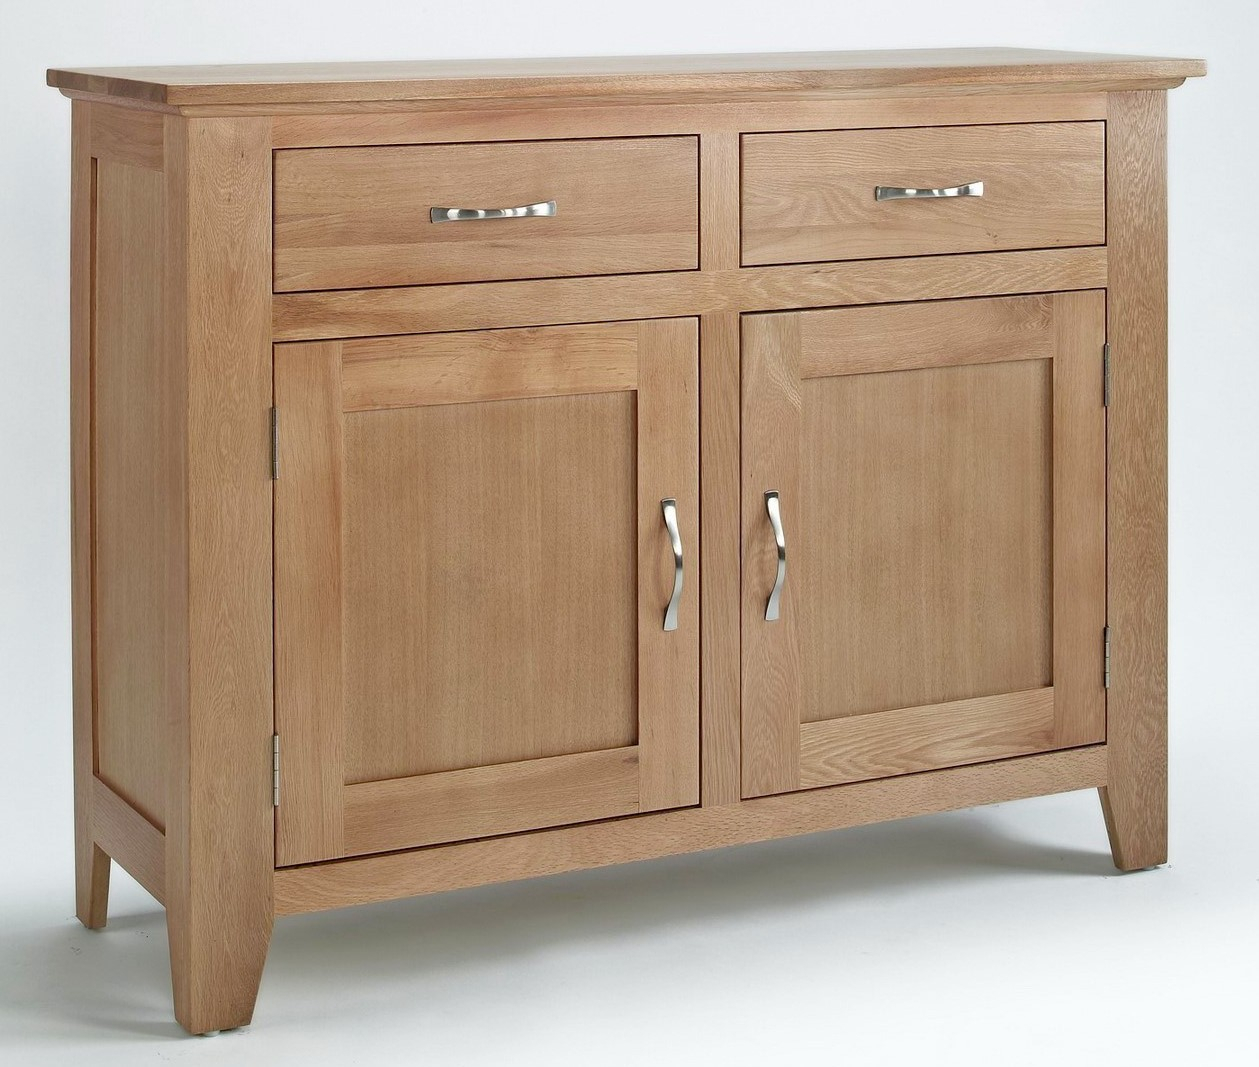 Camberley Oak 2 Door 2 Drawer Sideboard | Hallowood For Clifton Sideboards (View 1 of 30)